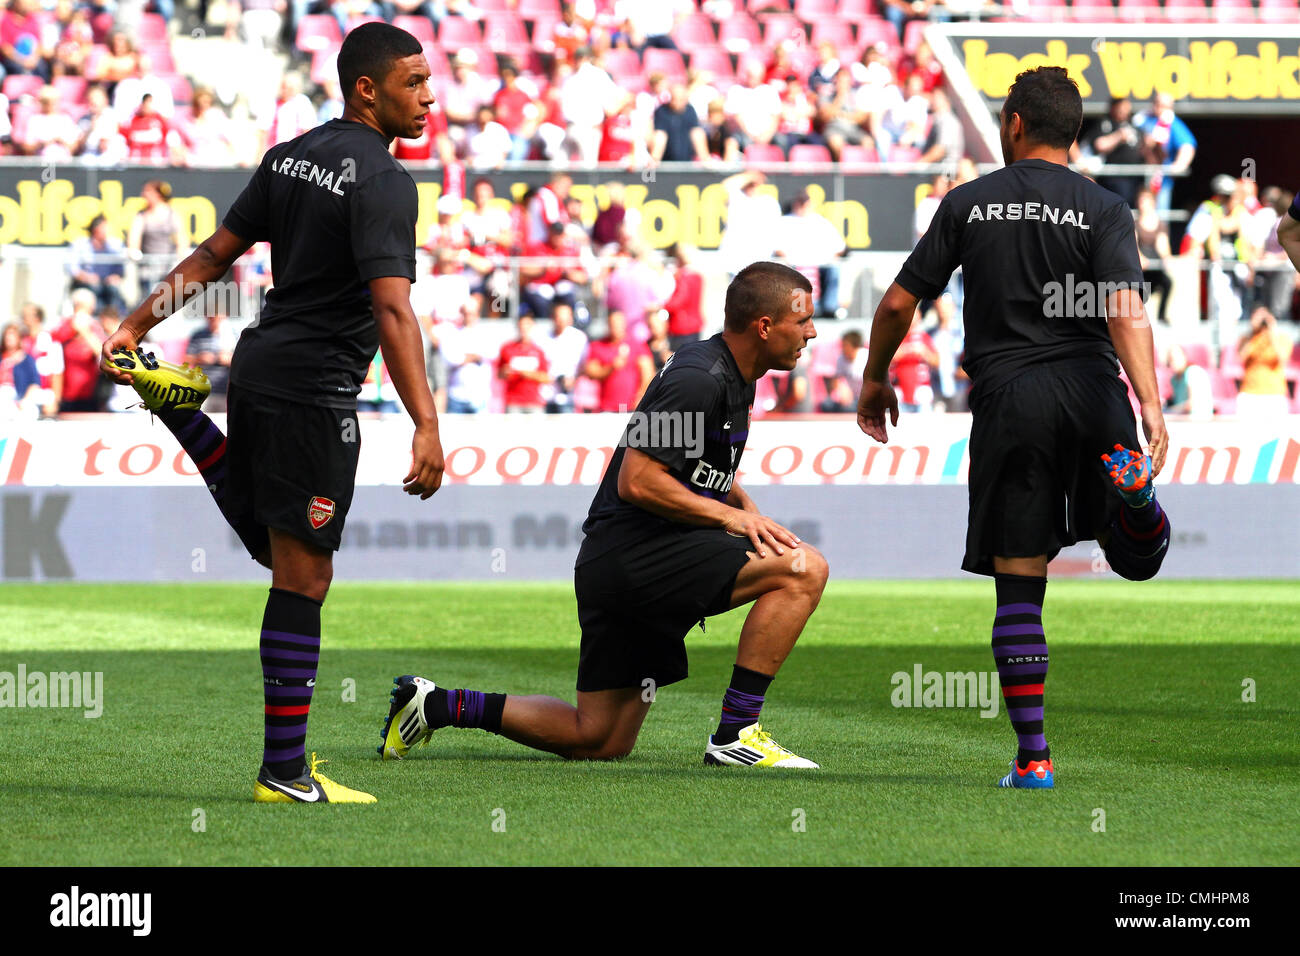 12.08.2012. Cologne, Germany.  Arsenal's Lukas Podolski (C) and his teammates warm up before preseaon friendly - Stock Image